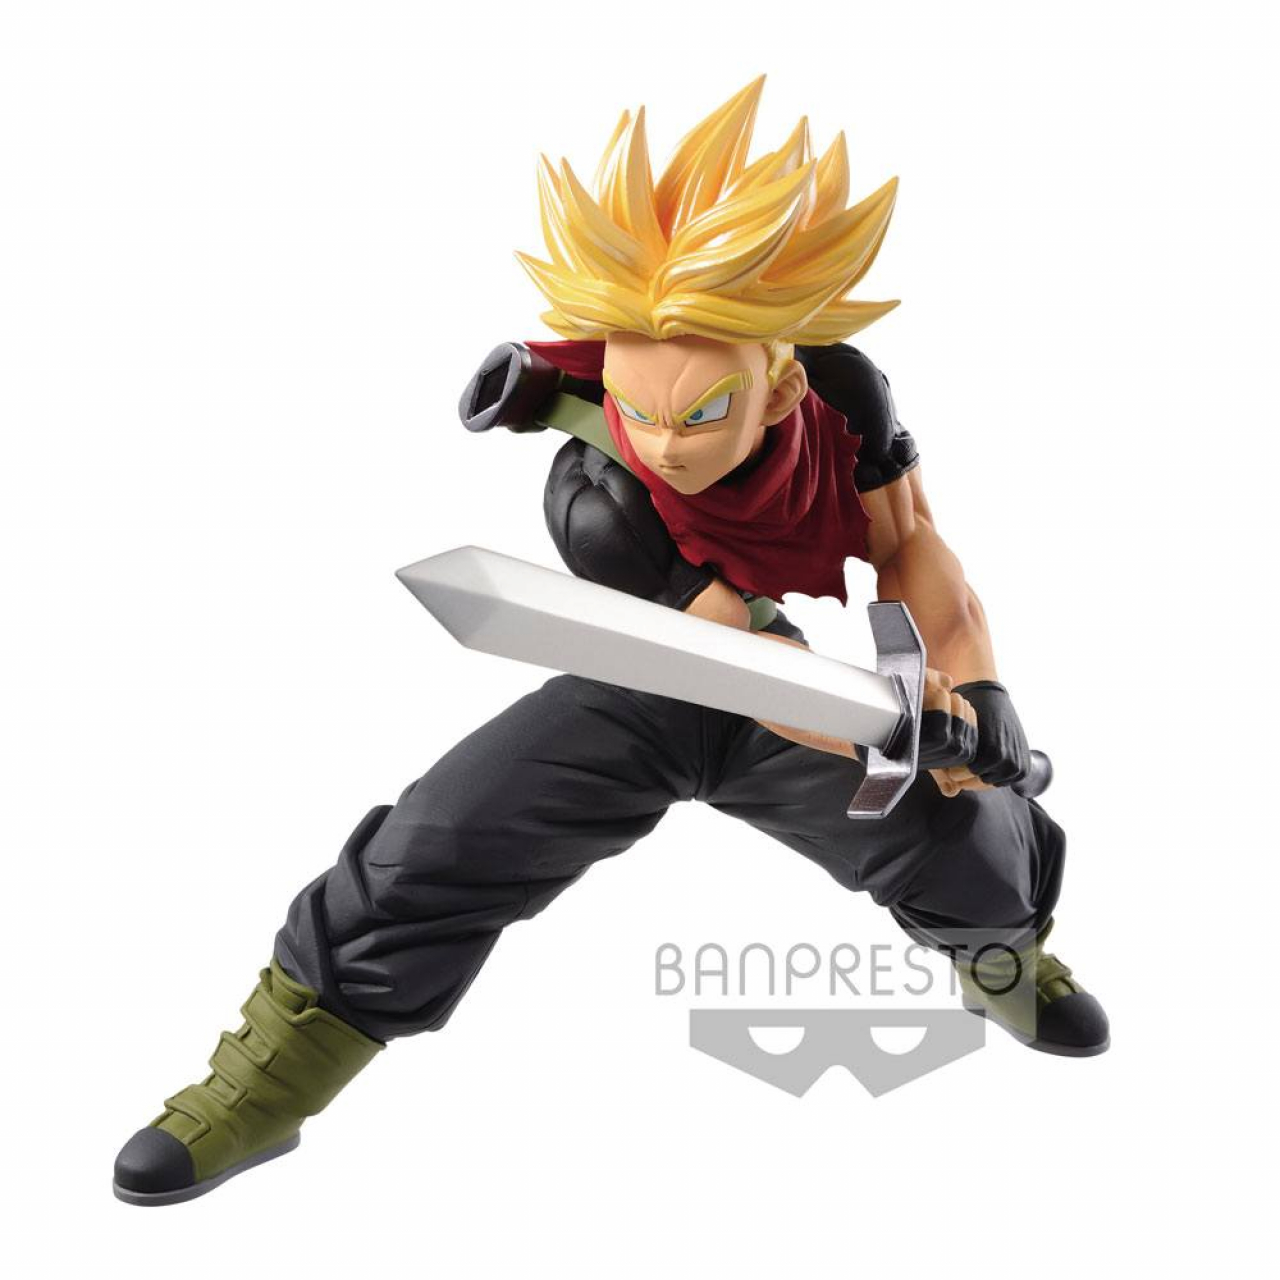 Super Dragon Ball Heroes Transcendence Art PVC Statue Super Saiyajin Trunks Future 14 cm